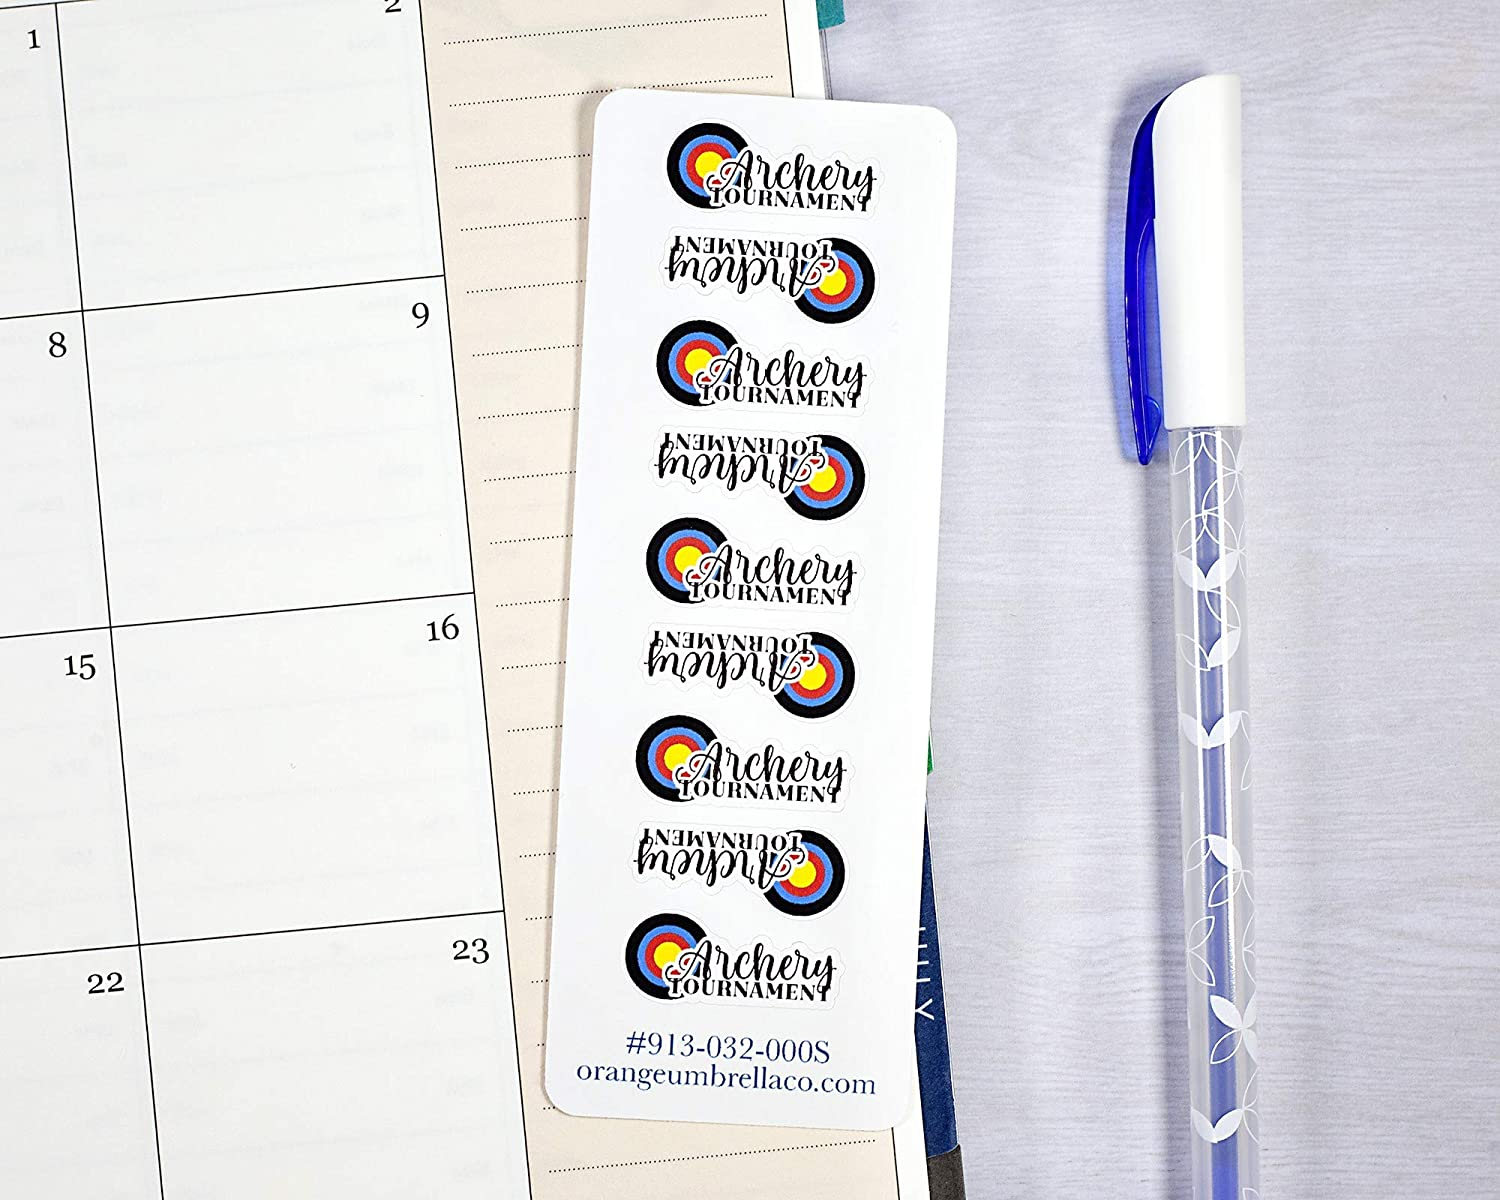 Flight Time Planner Stickers Archery Practice Tracker Stickers #913-032-000-WH Archery Tournament Icon Planner Stickers